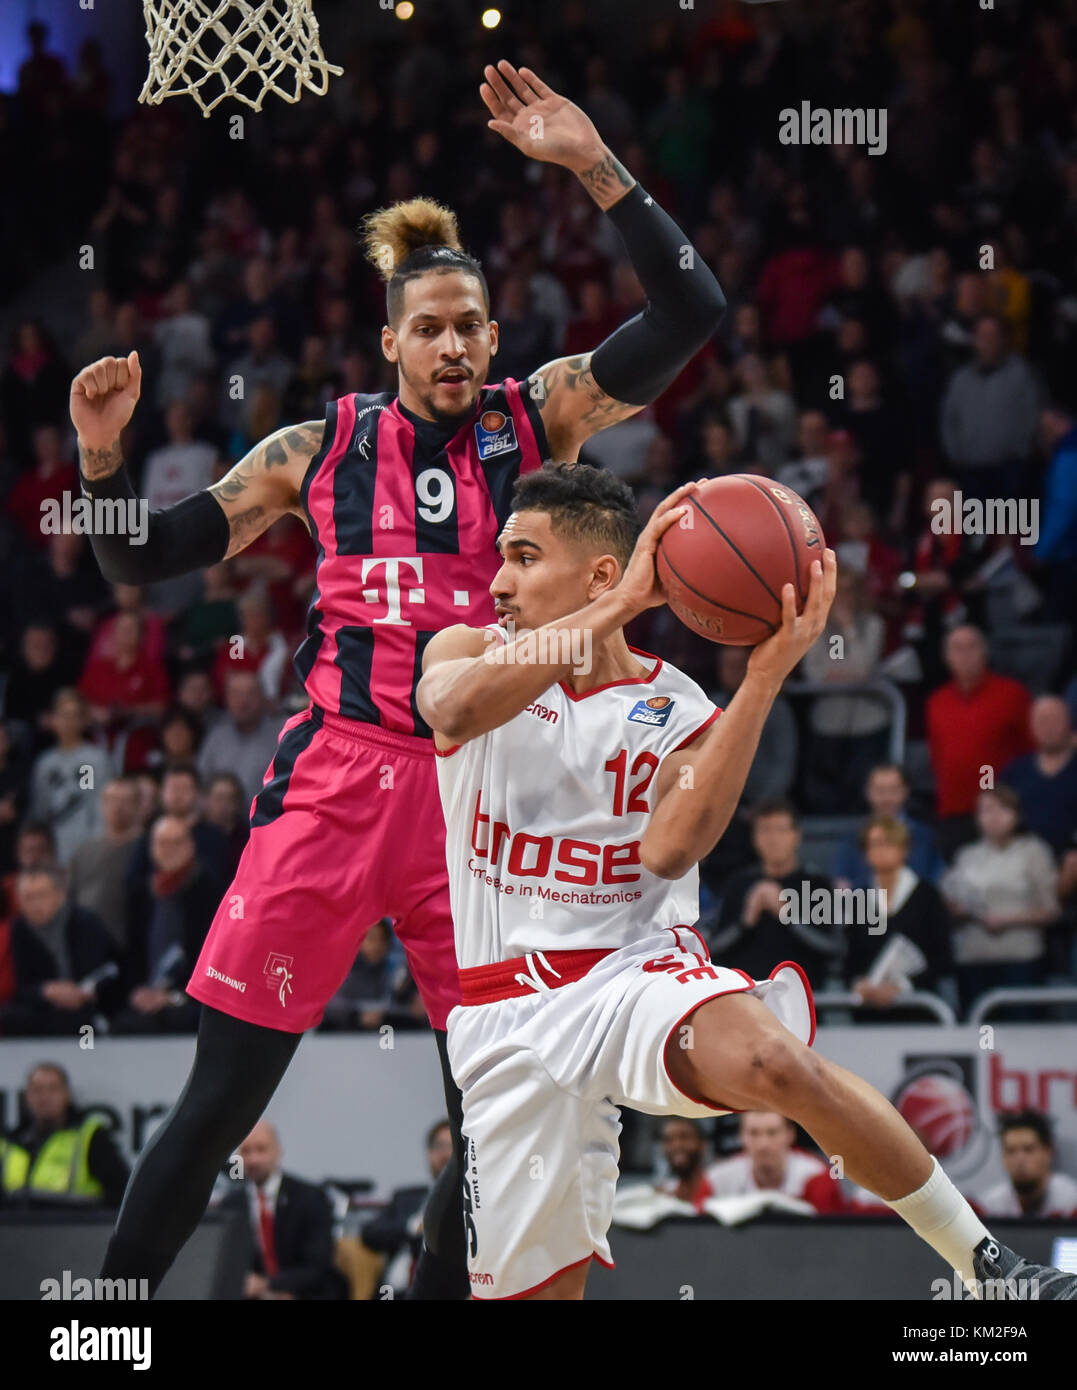 Germany, Bamberg, Brose Arena, 03 December 2017 - (From L-R): Julian GambleÊ (Telekom Baskets Bonn, #9) attempting - Stock Image